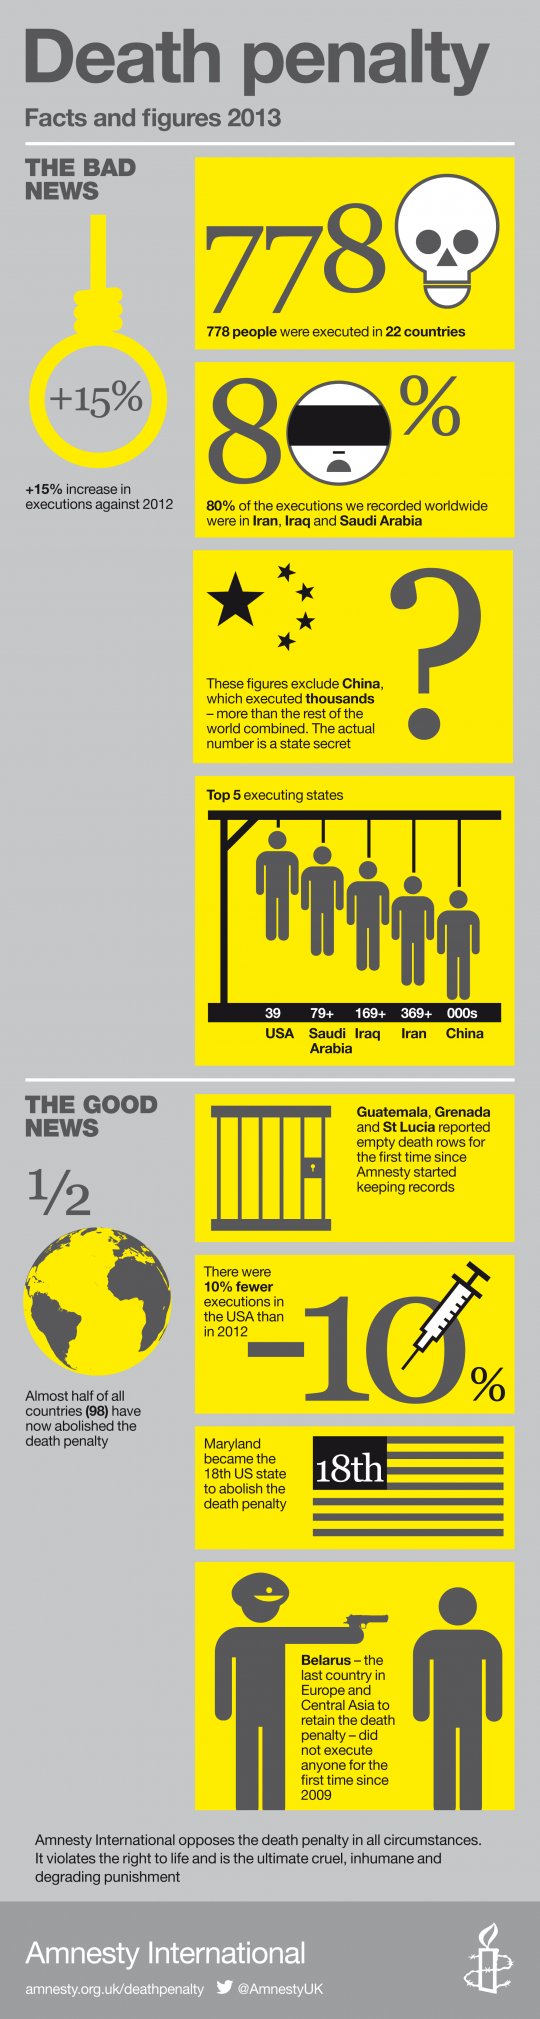 Death Penalty in 2013